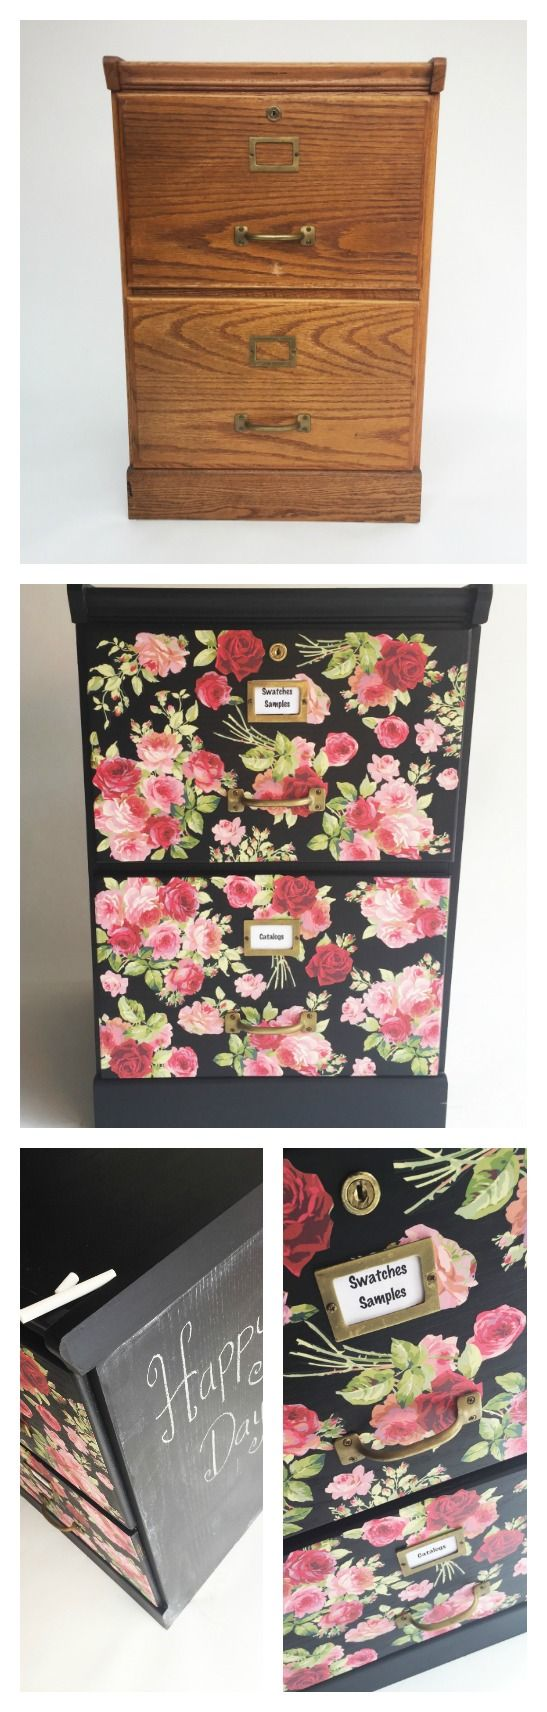 Makeover furniture on a budget using decoupage and chalk paint! Cathie & Steve rehab a thrift store file cabinet into a custom piece perfect for a home office! Join in for tips and tricks using Mod Podge Furniture and FolkArt Home Decor Chalk to upcycle this file cabinet.